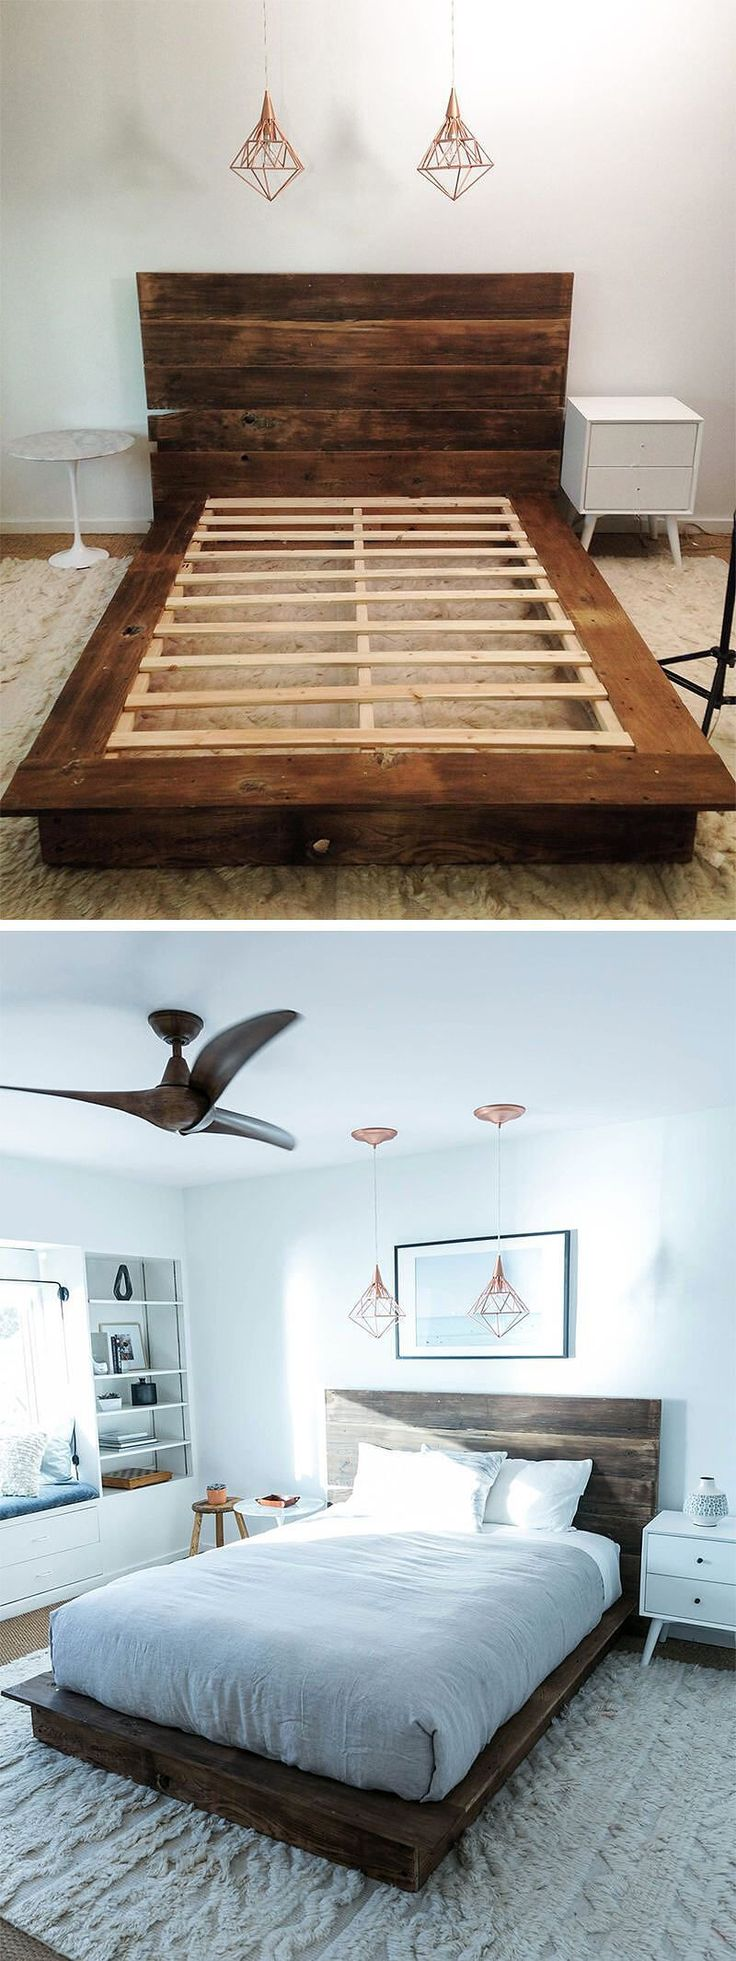 34 Reclaimed Wood DIY Projects You Can Make At Home